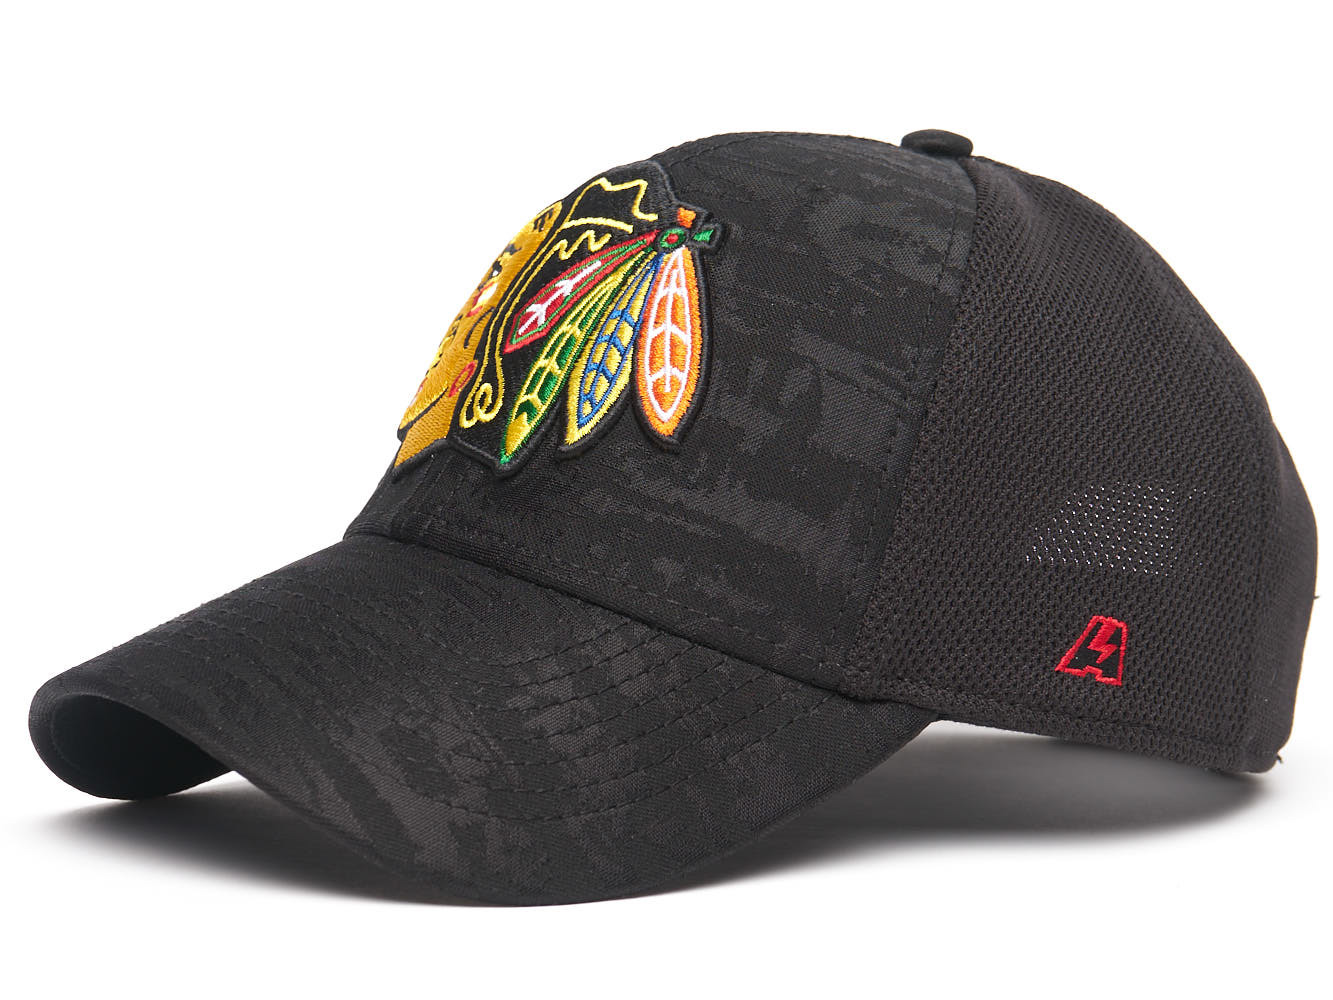 Бейсболка NHL Chicago Blackhawks (размер M)